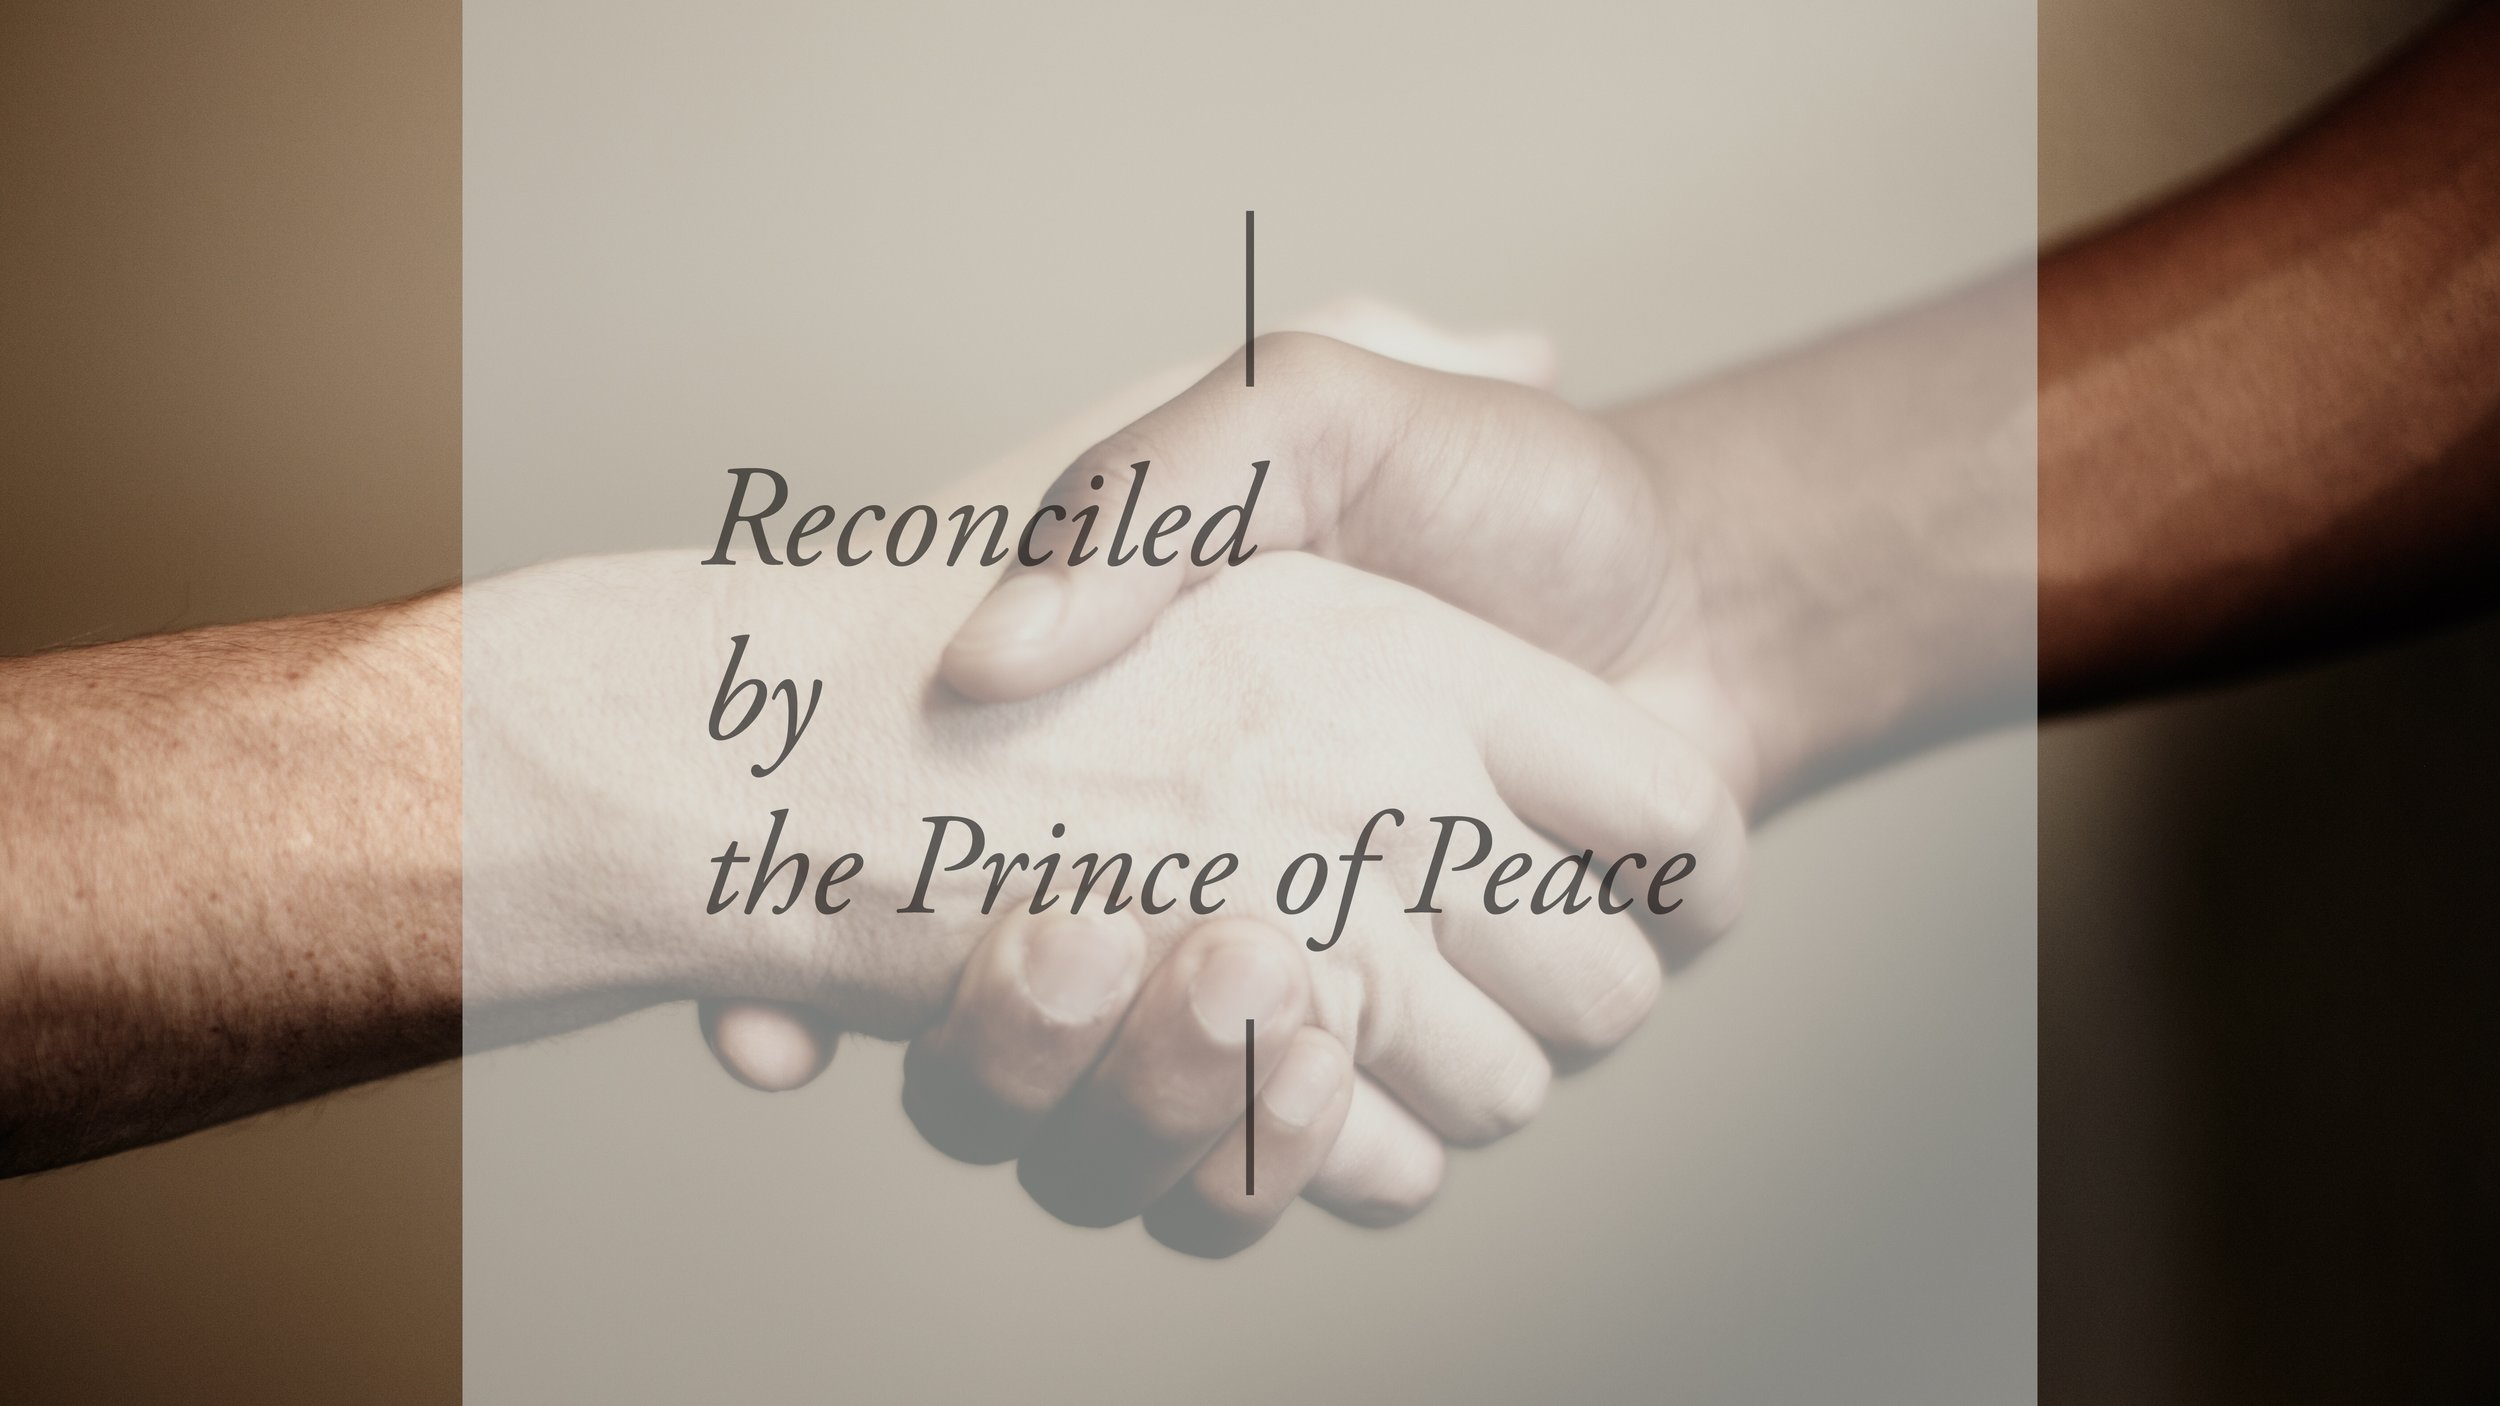 Reconciled by the Prince of Peace (2 Corinthians 5:17-18) - May 27, 2018